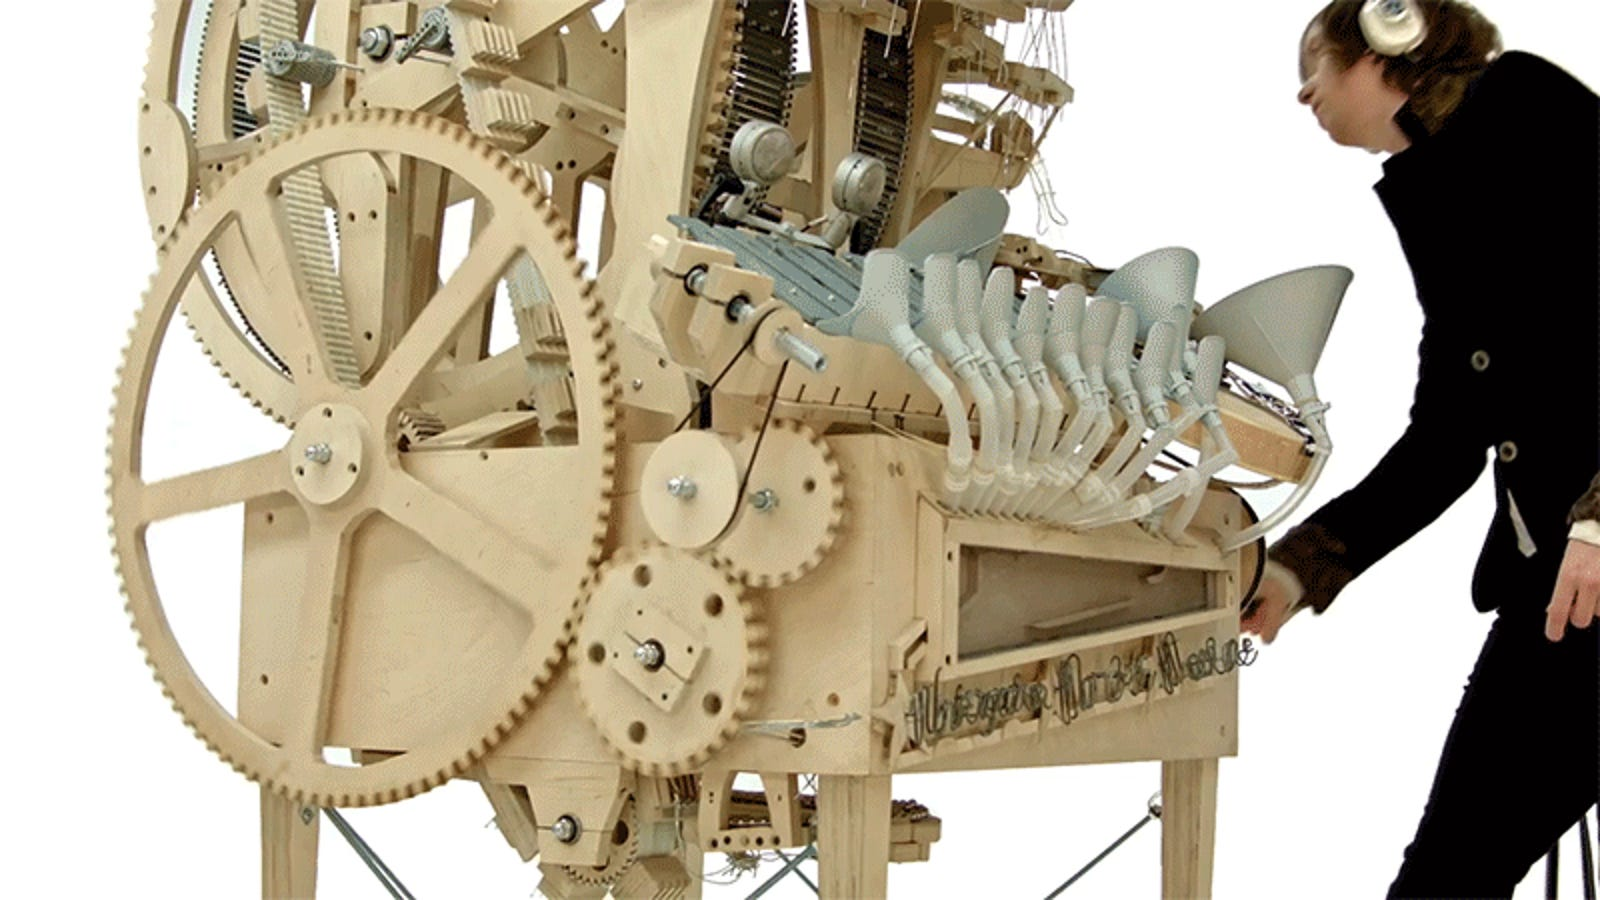 Wooden Hand-Cranked Instrument Runs on 2,000 Marbles